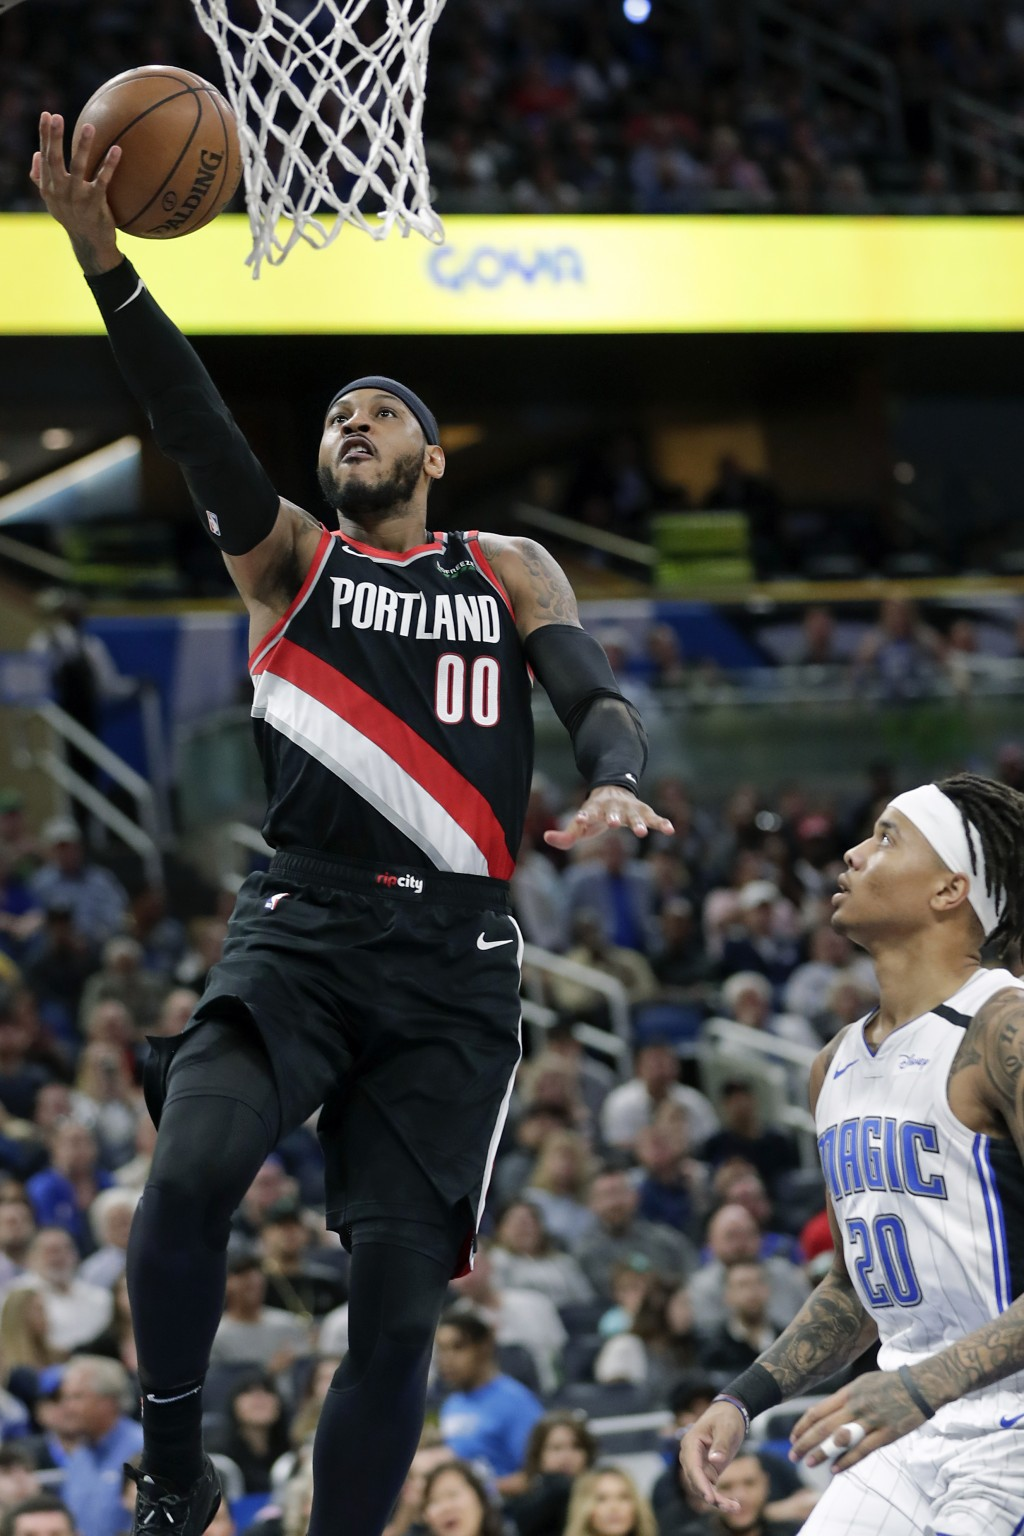 Portland Trail Blazers forward Carmelo Anthony (00) shoots in front of Orlando Magic guard Markelle Fultz (20) during the first half of an NBA basketb...